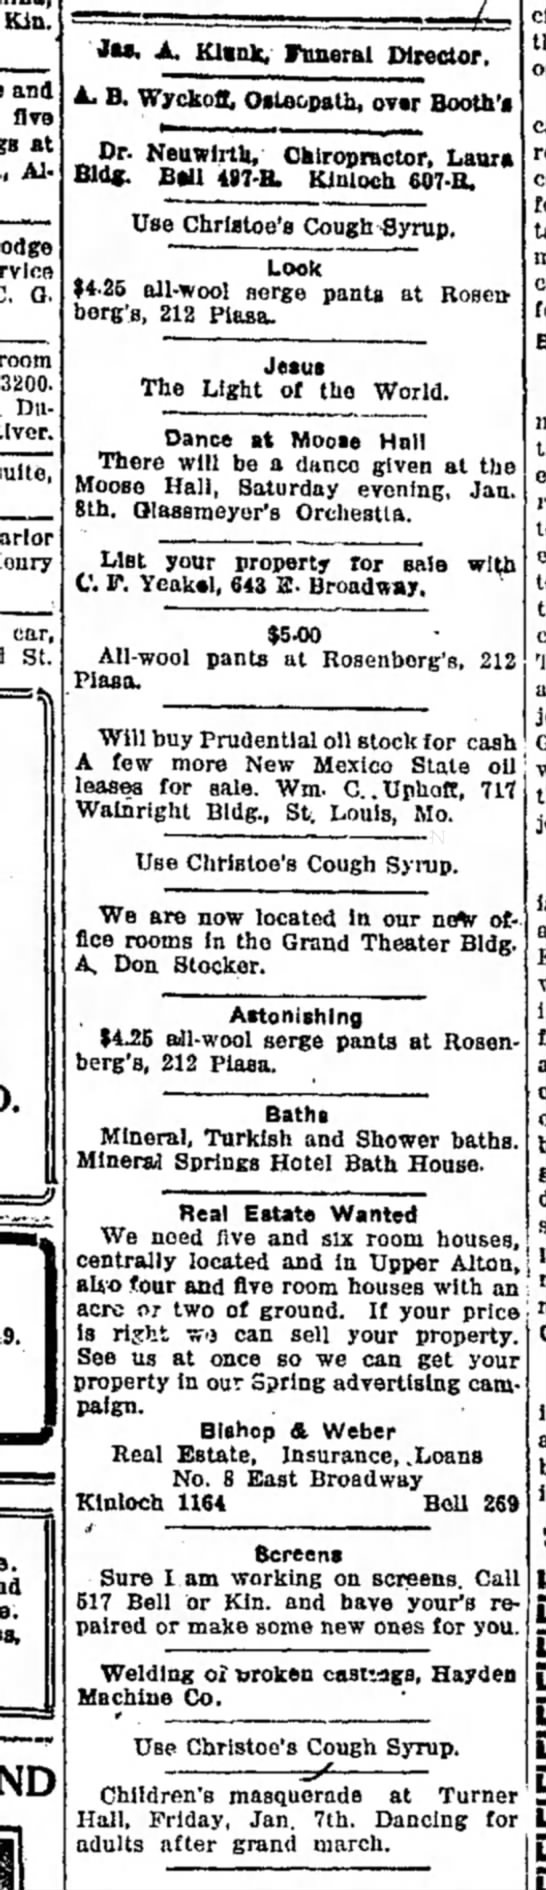 Use Christoe's Cough Syrup